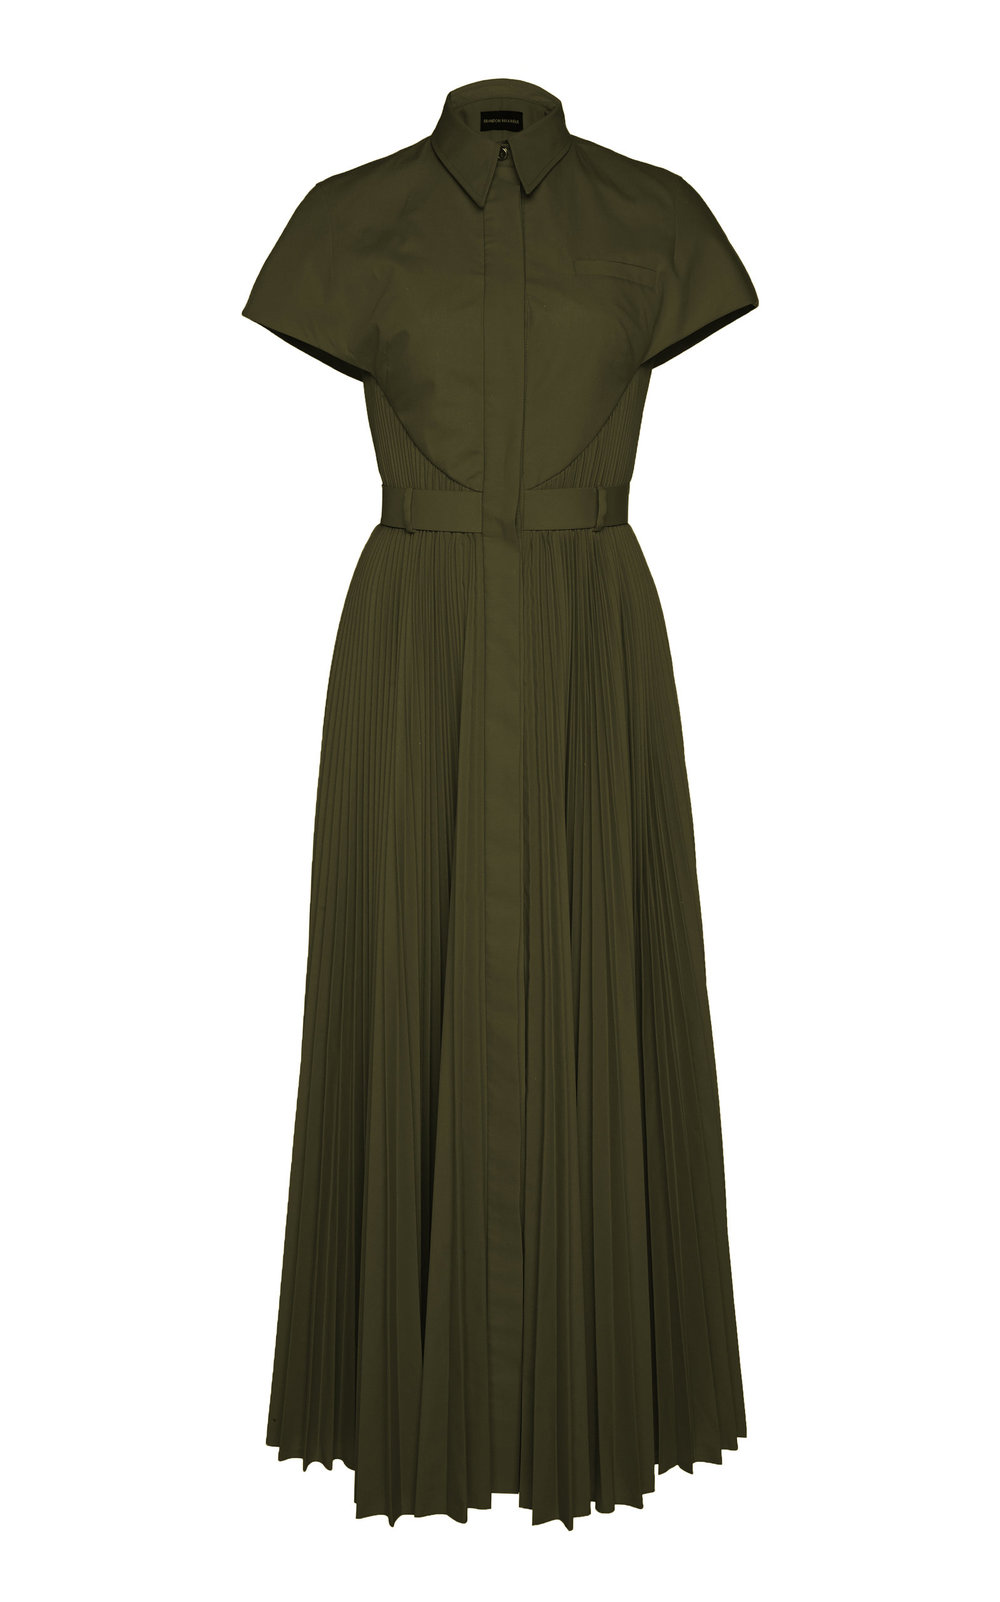 large_brandon-maxwell-olive-m-o-exclusive-pleated-poplin-shirt-dress.jpg